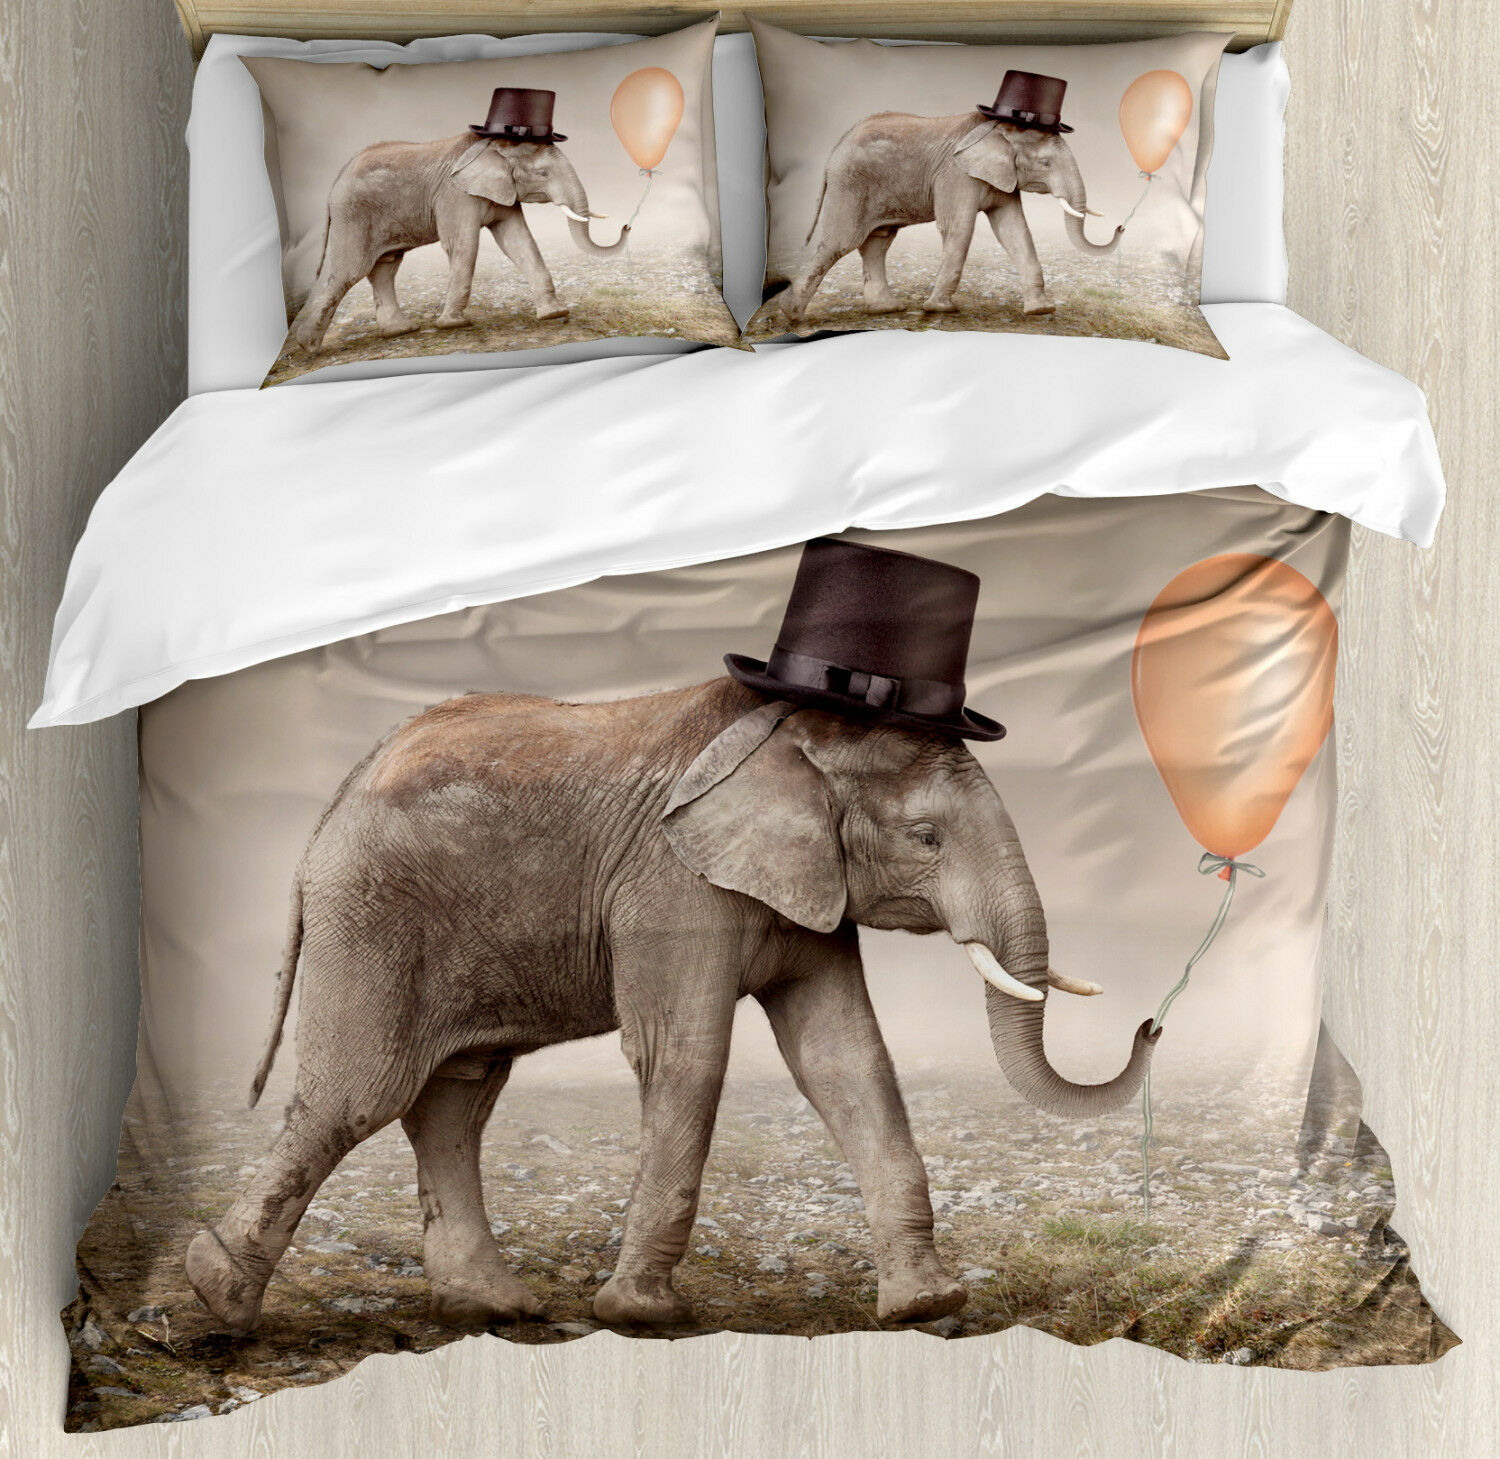 Surreal Duvet Cover Set with Pillow Shams Illusionist Elephant Print